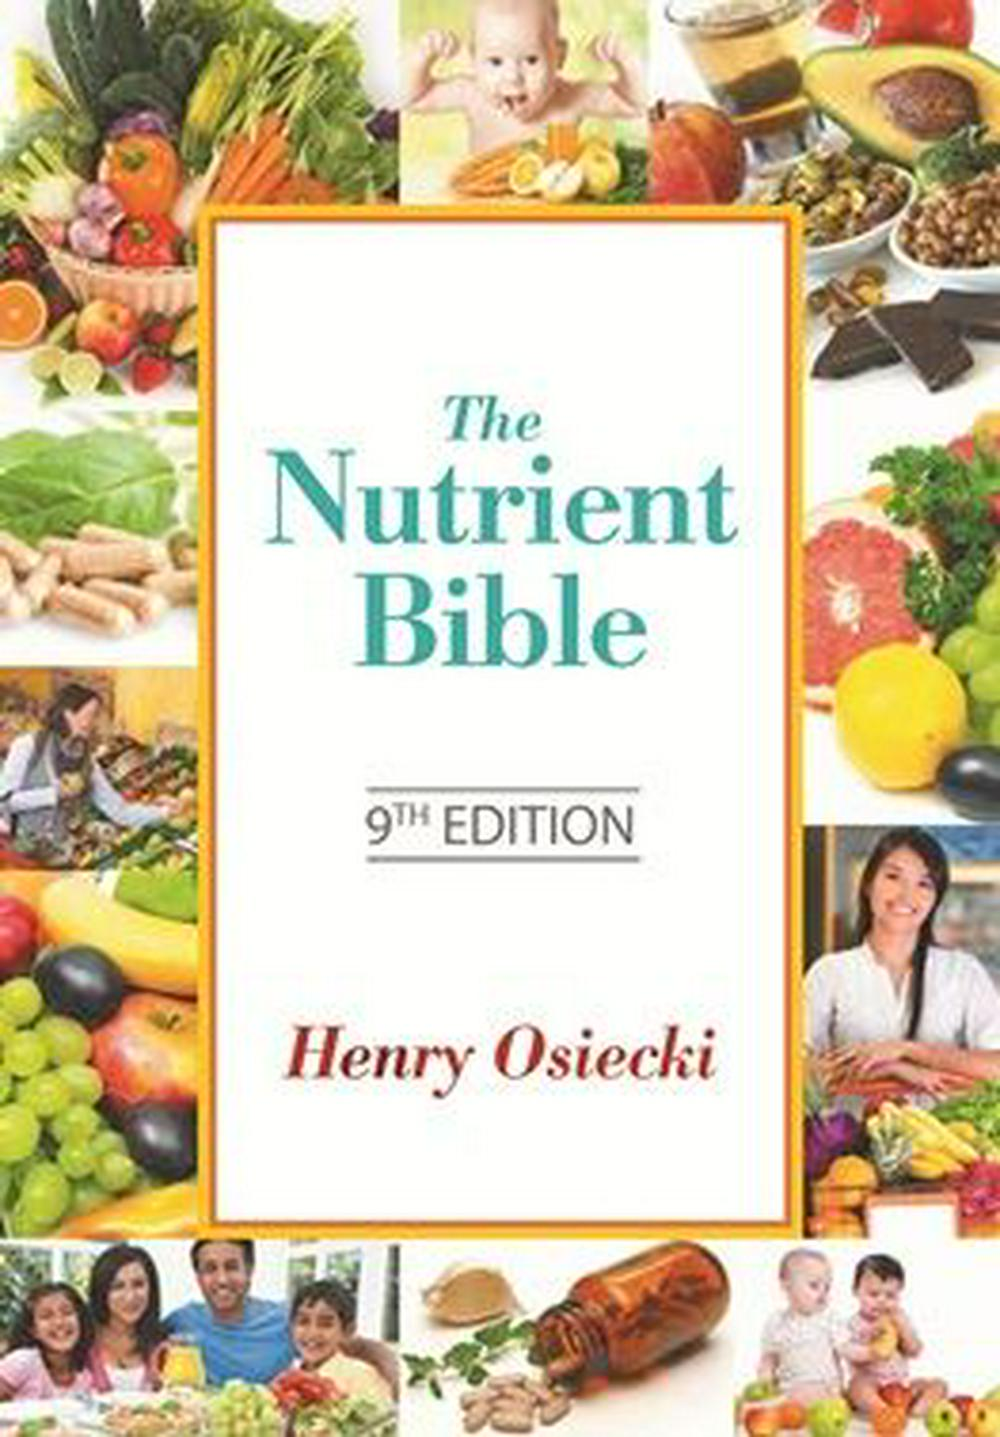 The Nutrient Bible 9th edition by Henry Osiecki, ISBN: 9781875239542